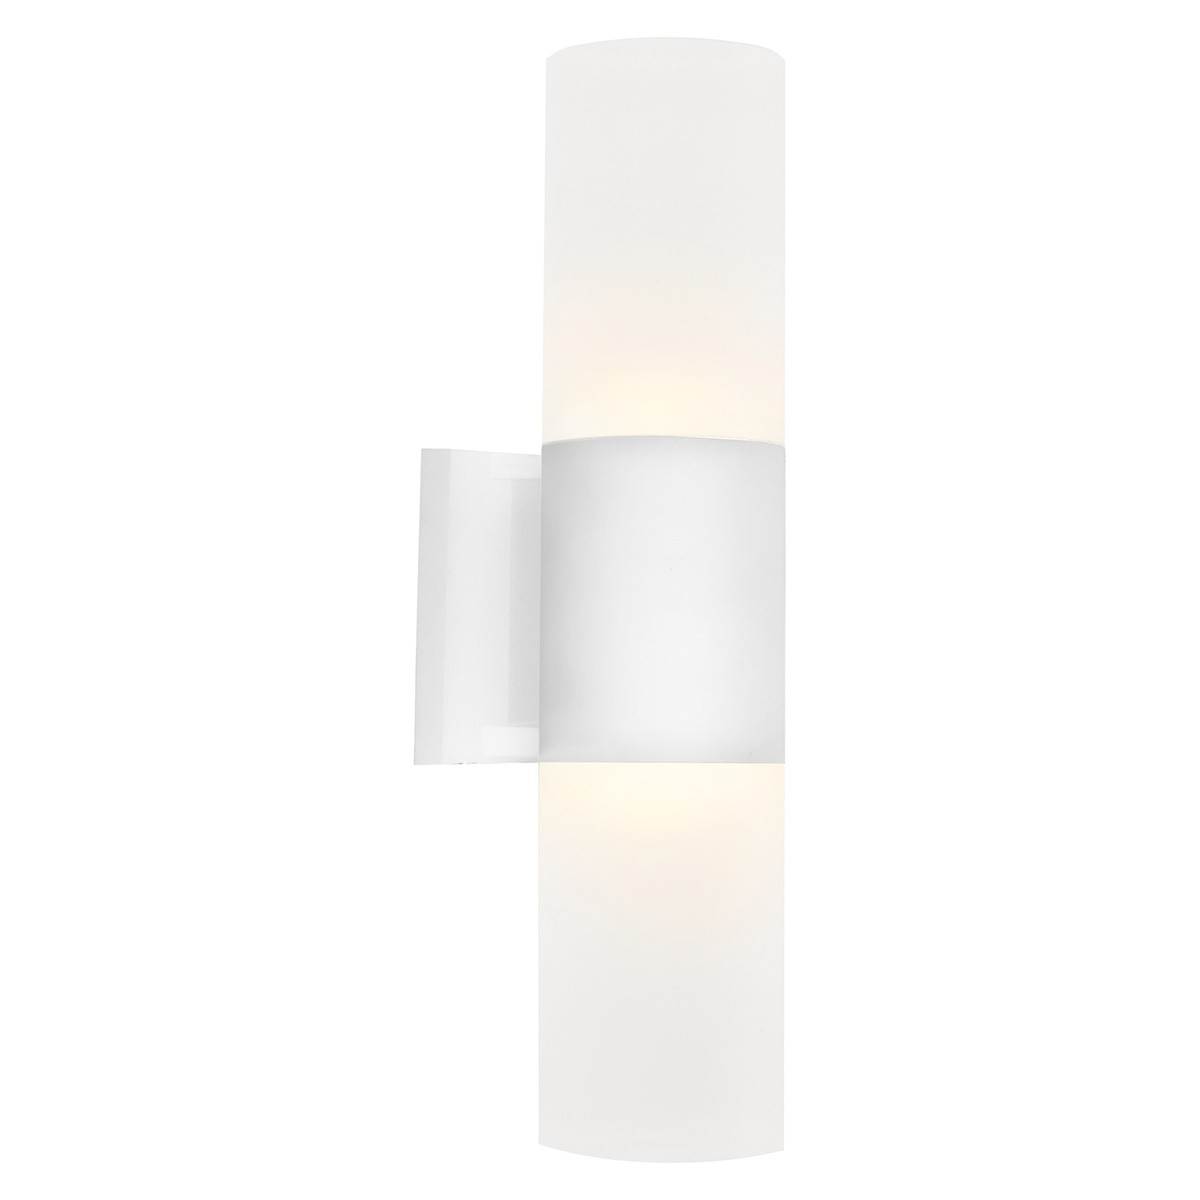 Ottawa IP54 Exterior LED Wall Light, White